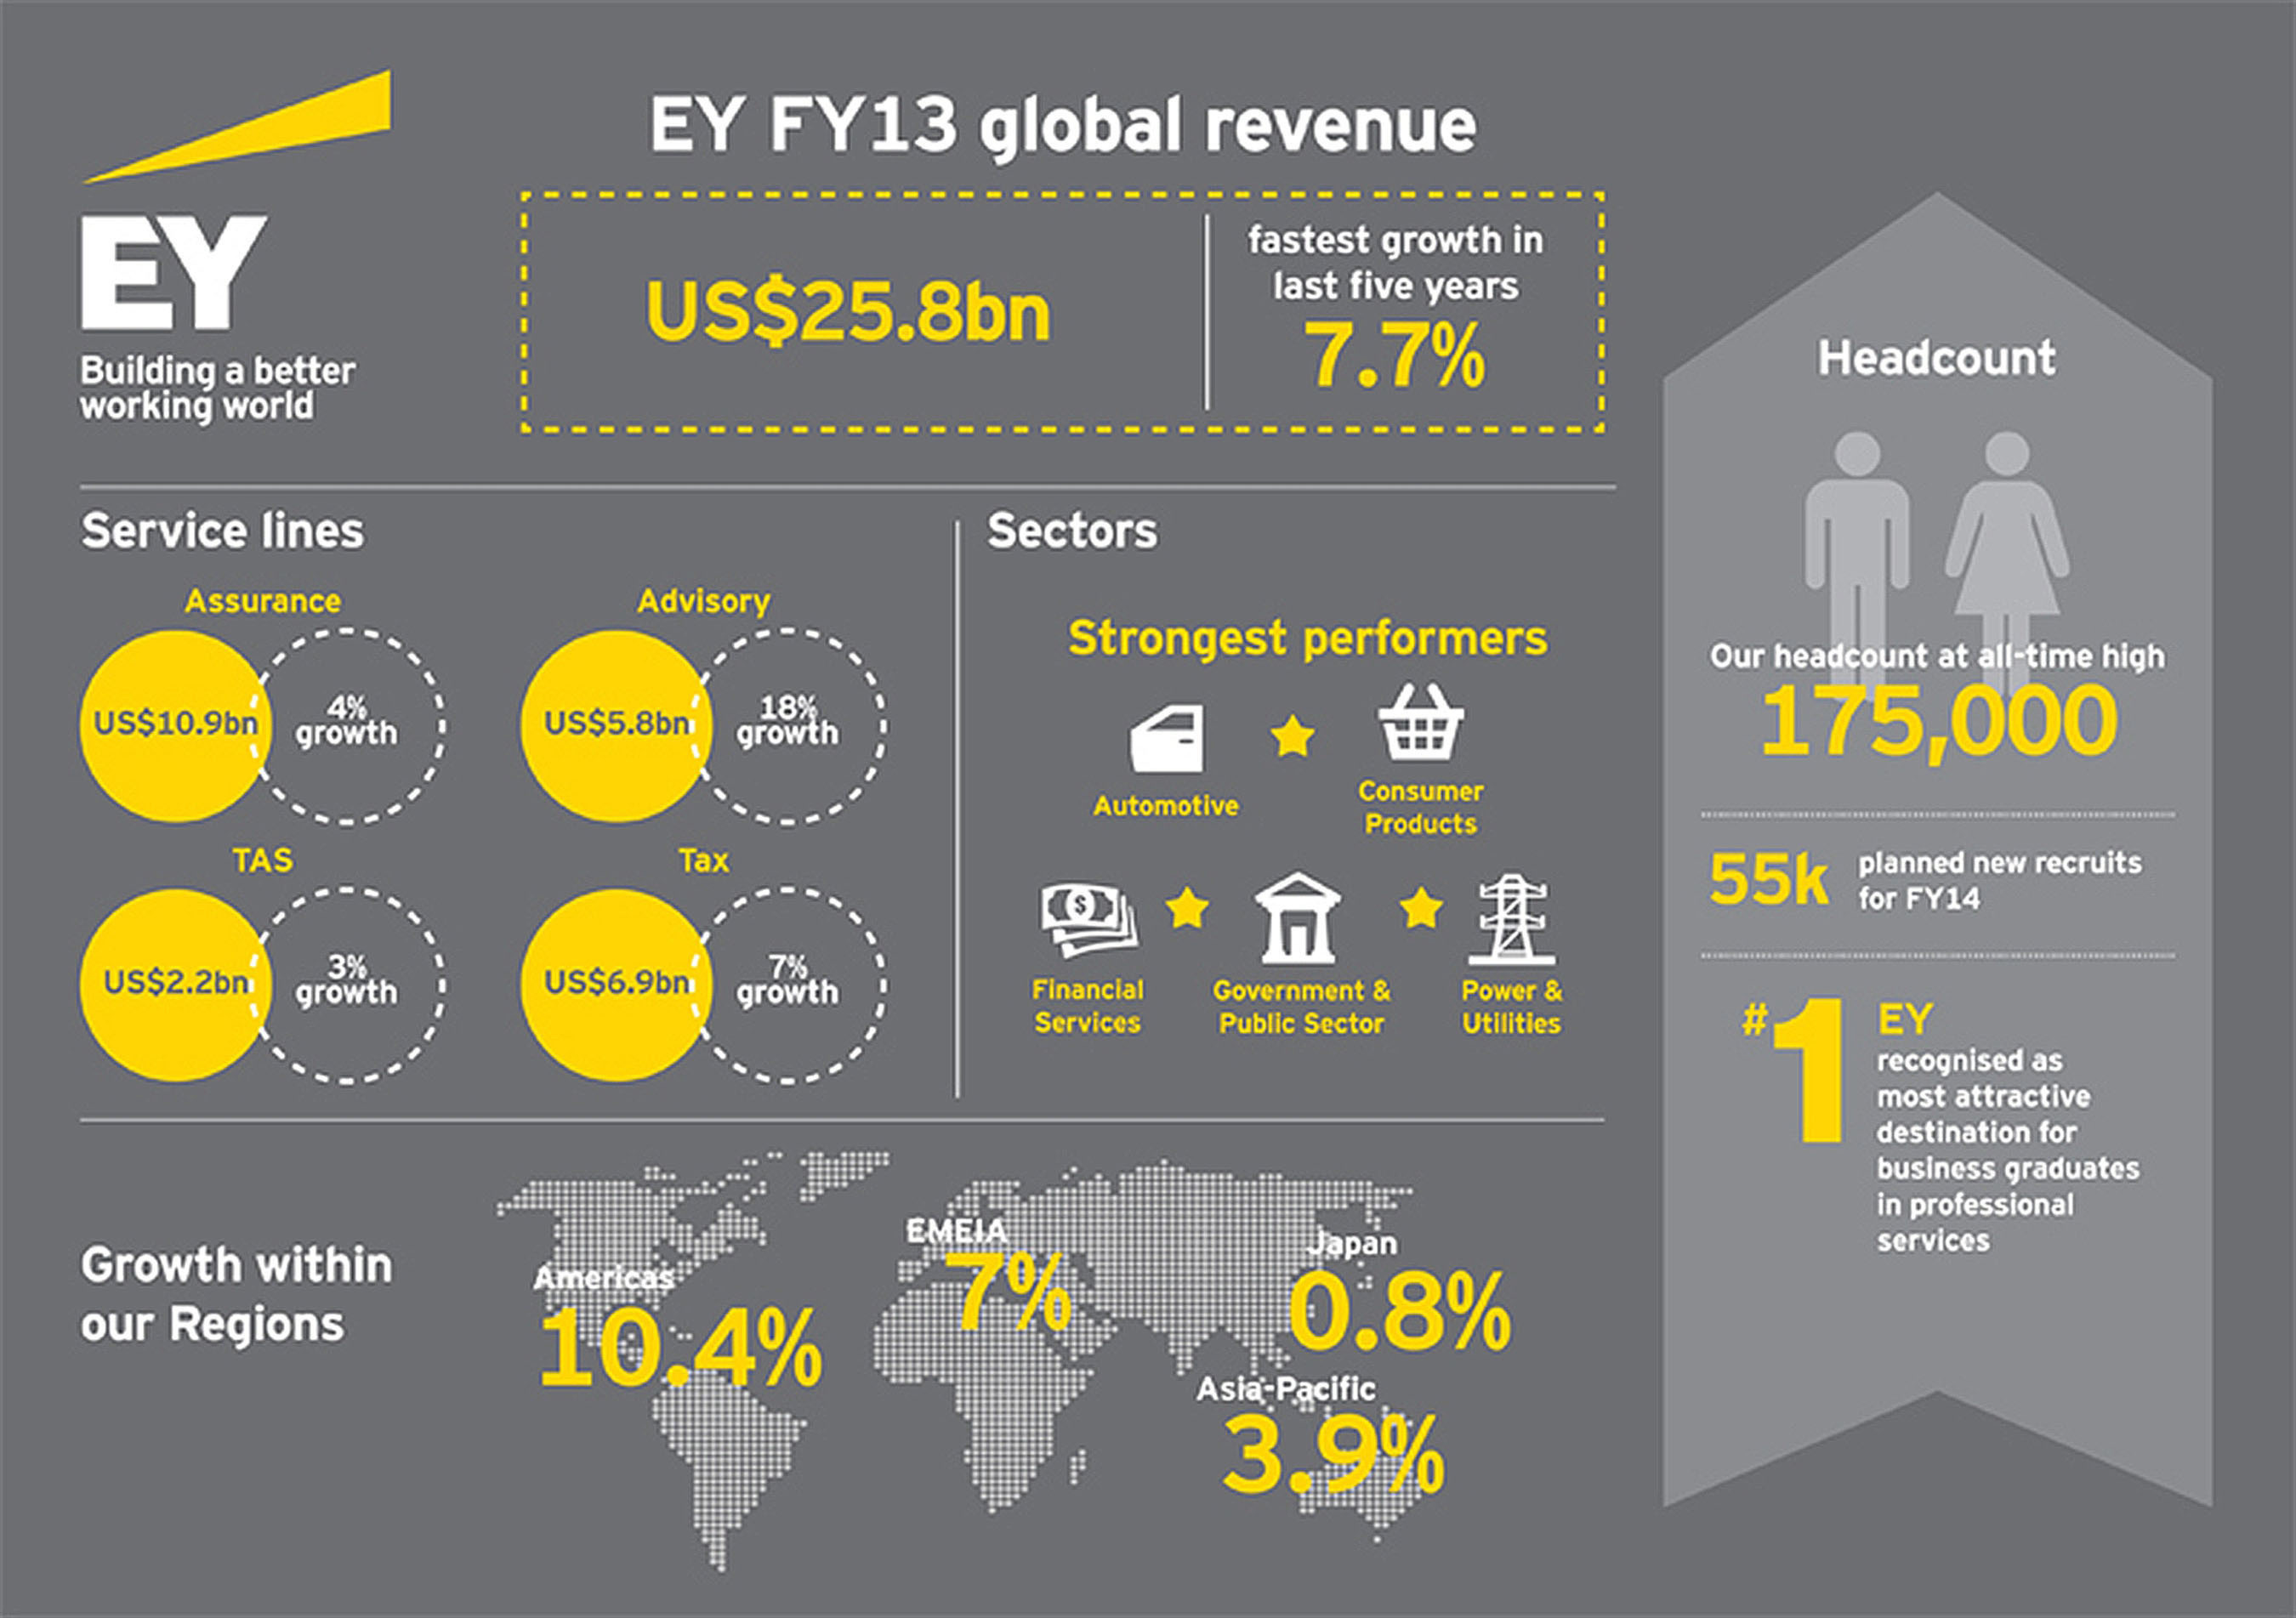 EY FY13 Global Revenue.  (PRNewsFoto/EY)